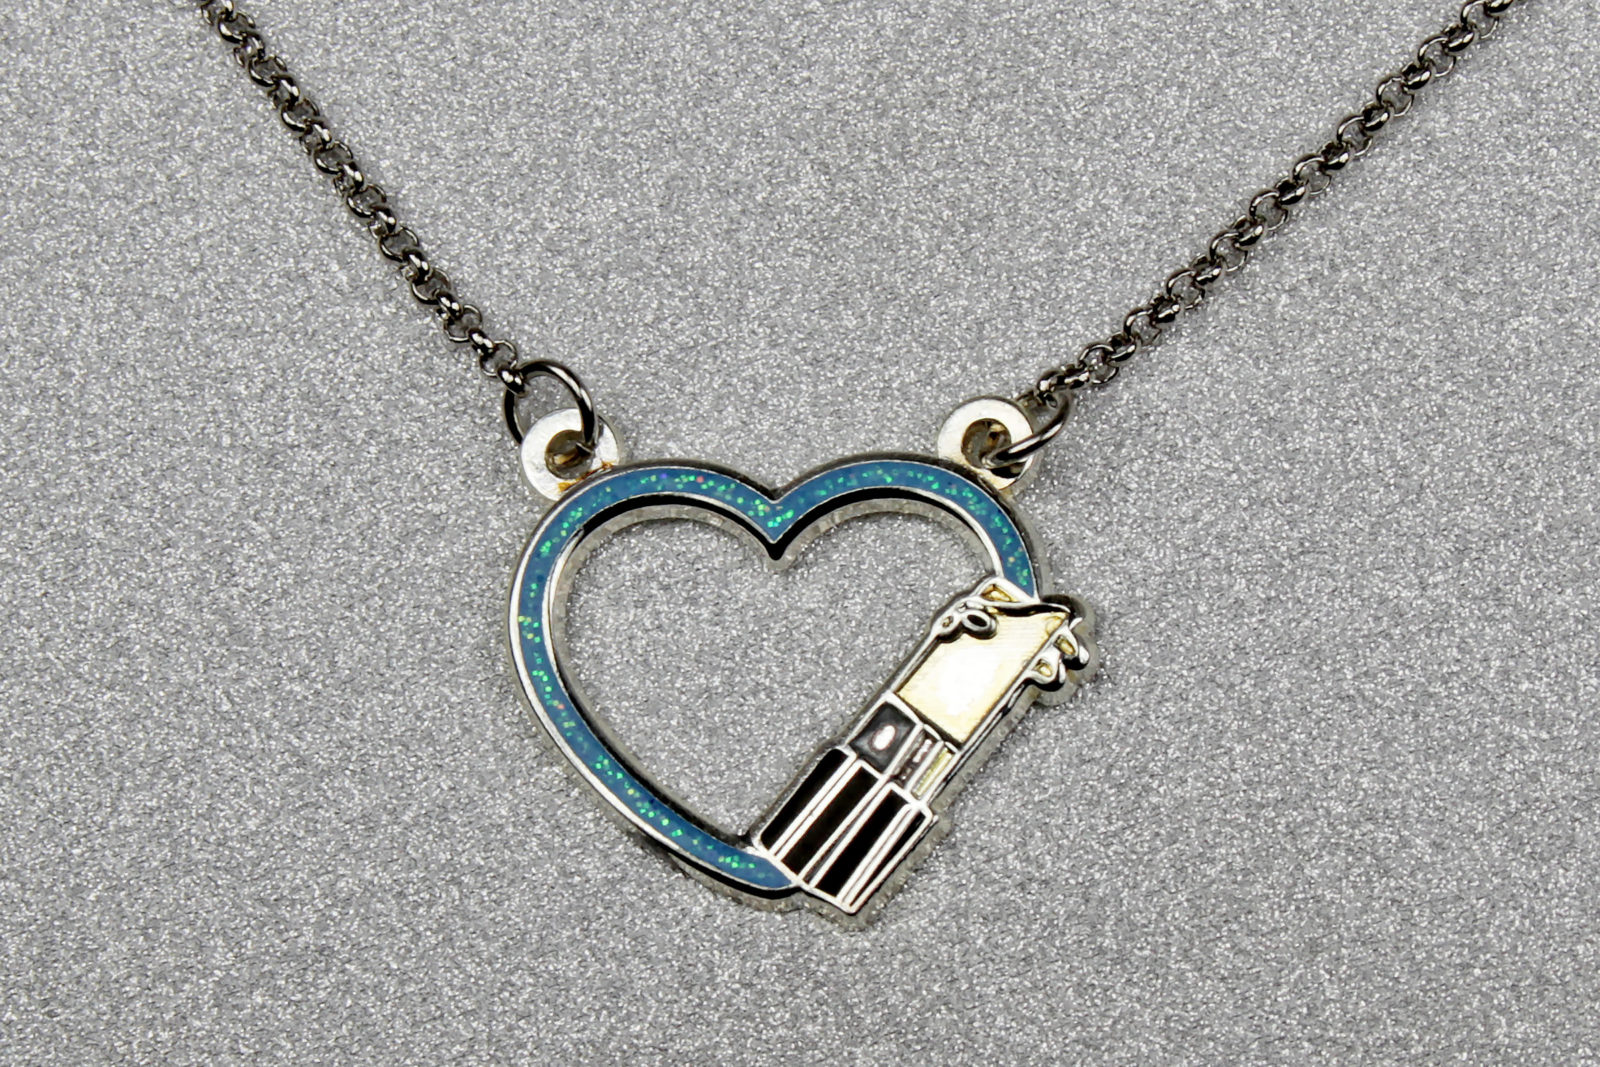 Review – Lantern Pins Lightsaber Heart Necklace